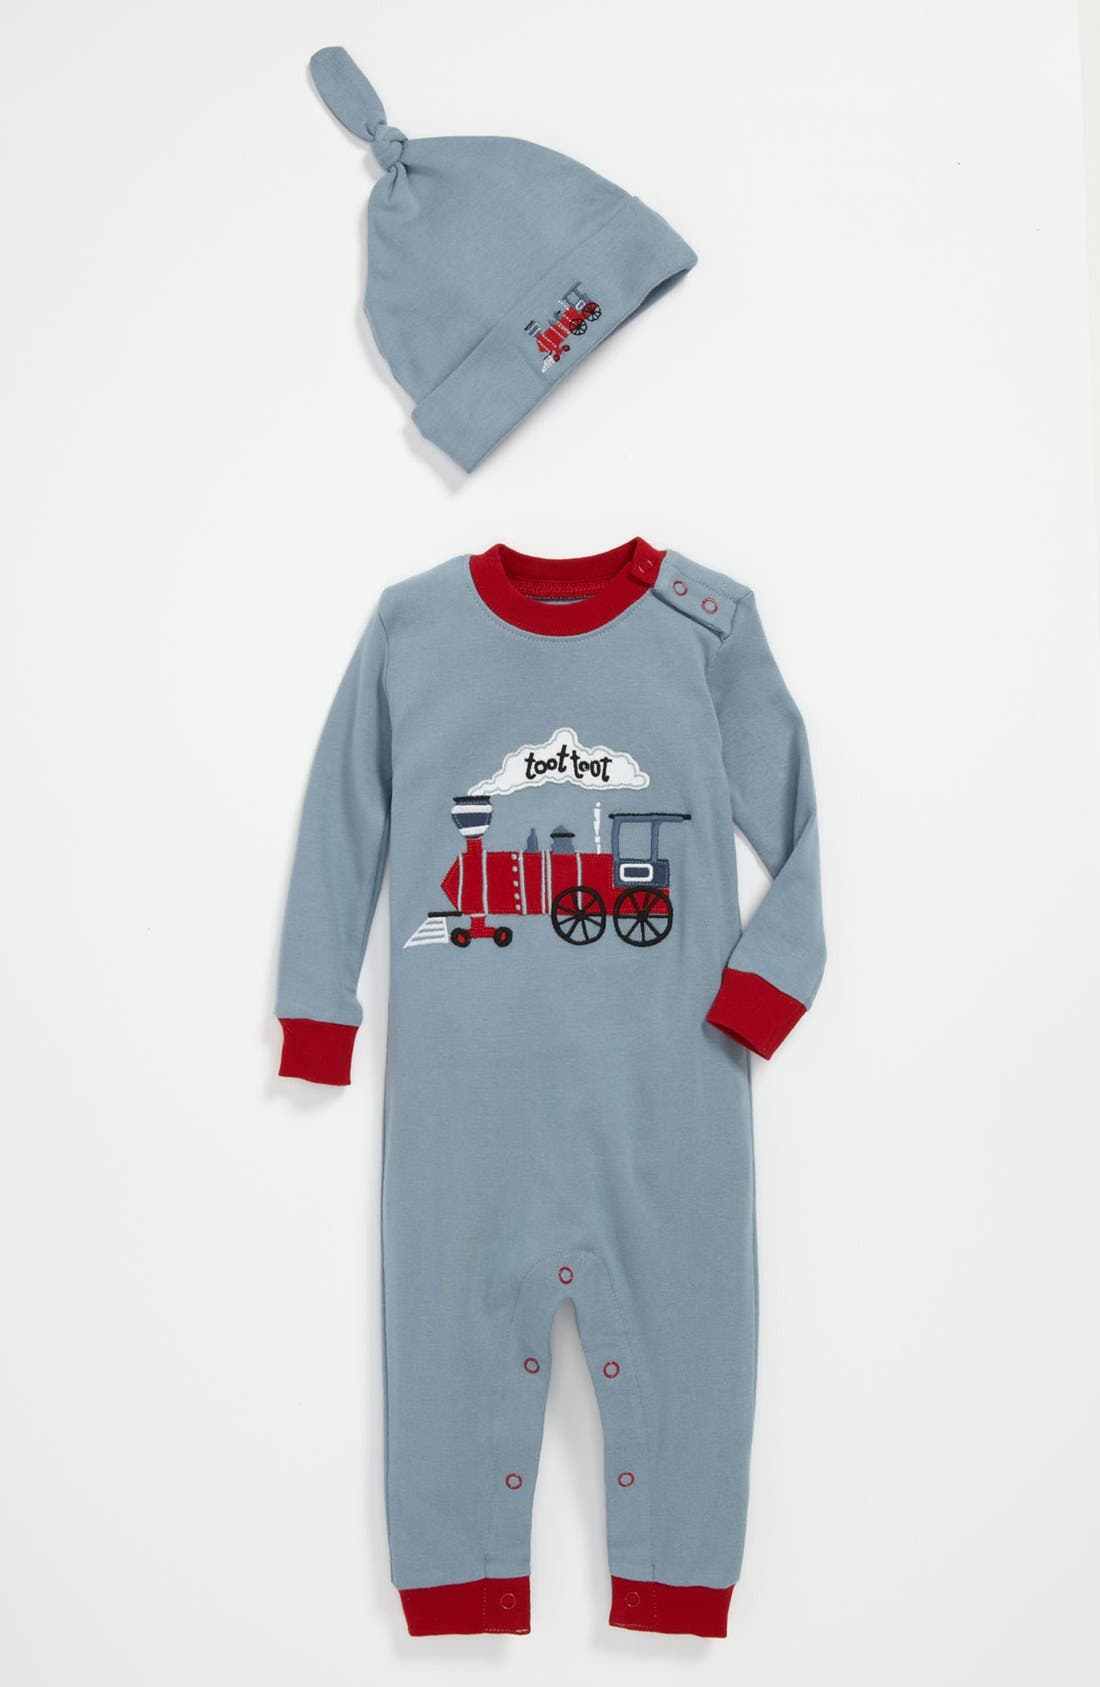 Main Image - Hatley Fitted Romper Pajamas & Hat (Baby)